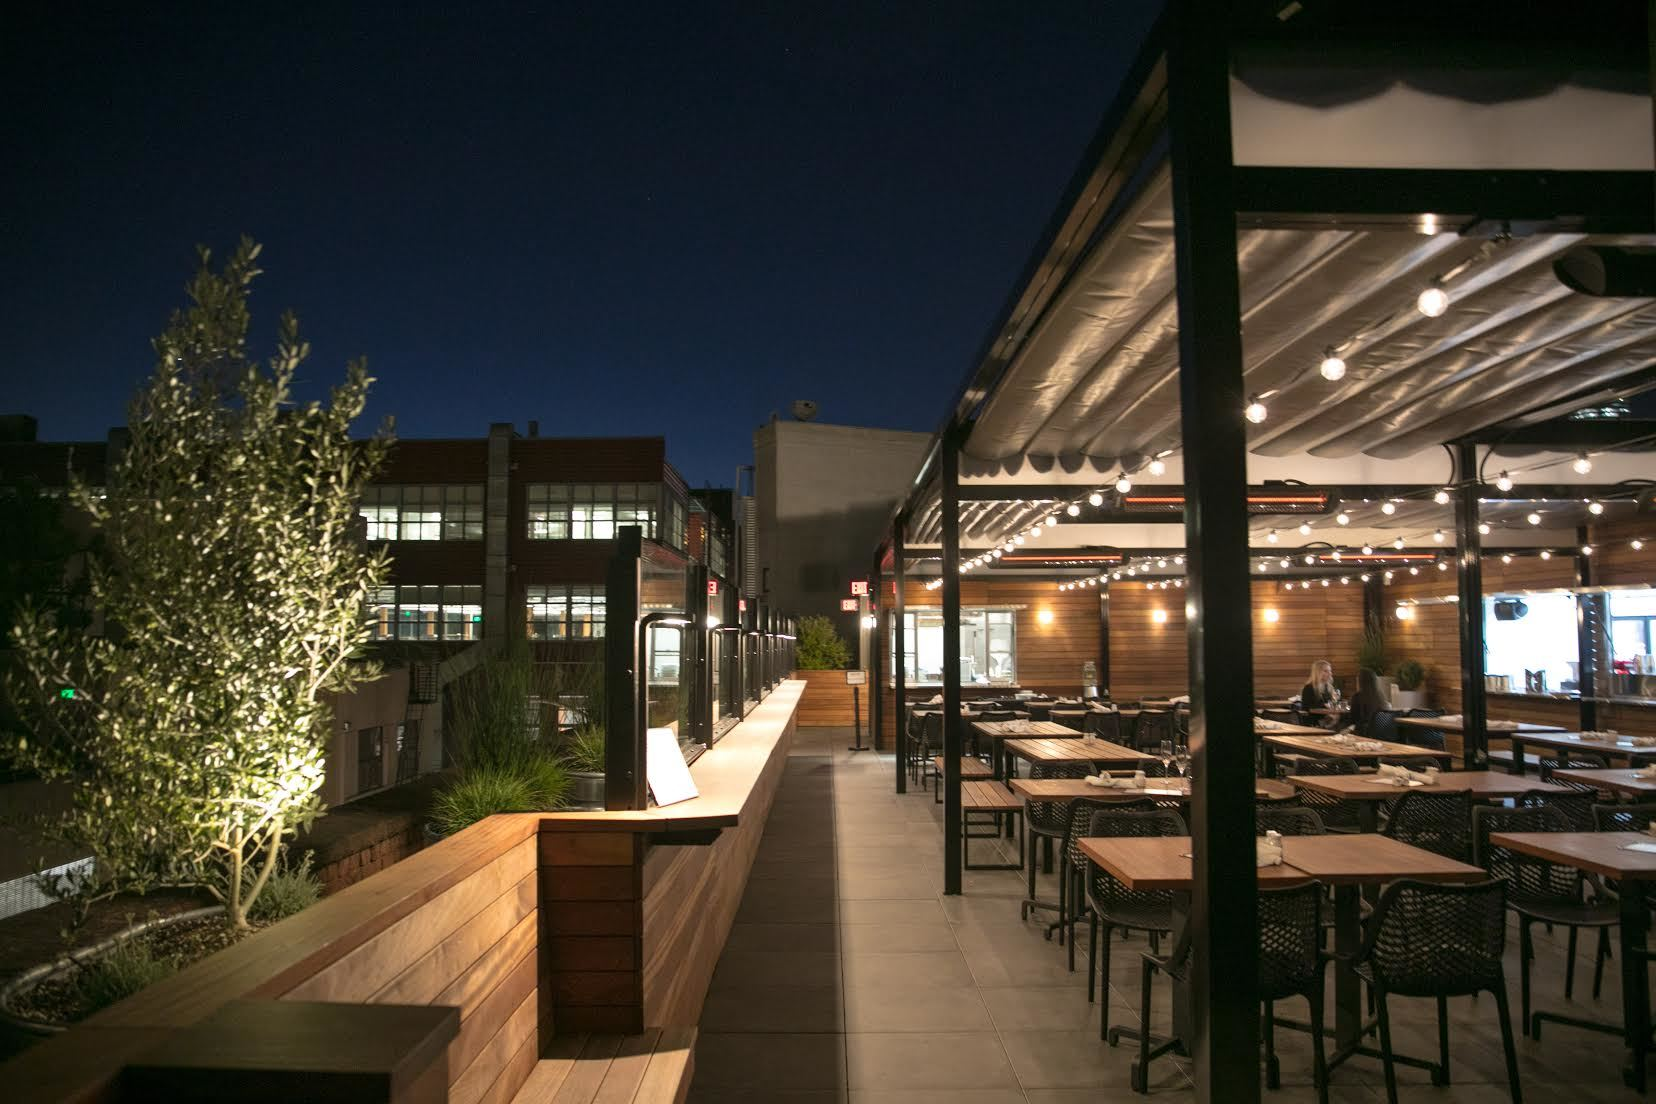 10 Best Rooftop Bars in San Francisco for Drinks with a View